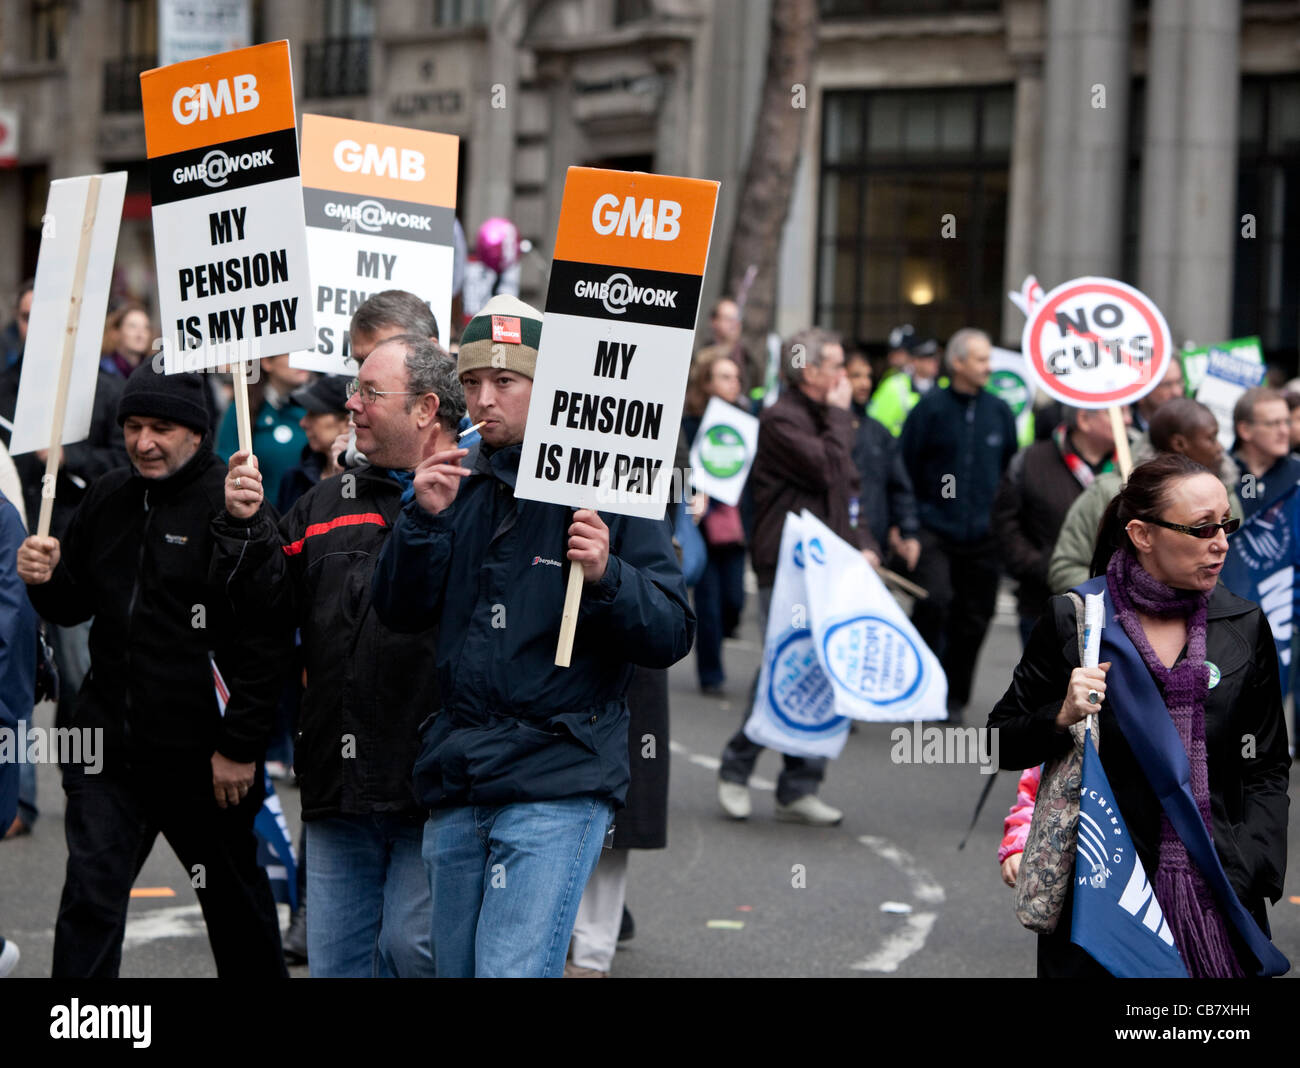 Public sector strike,the unions, 2011, London, England, UK - Stock Image